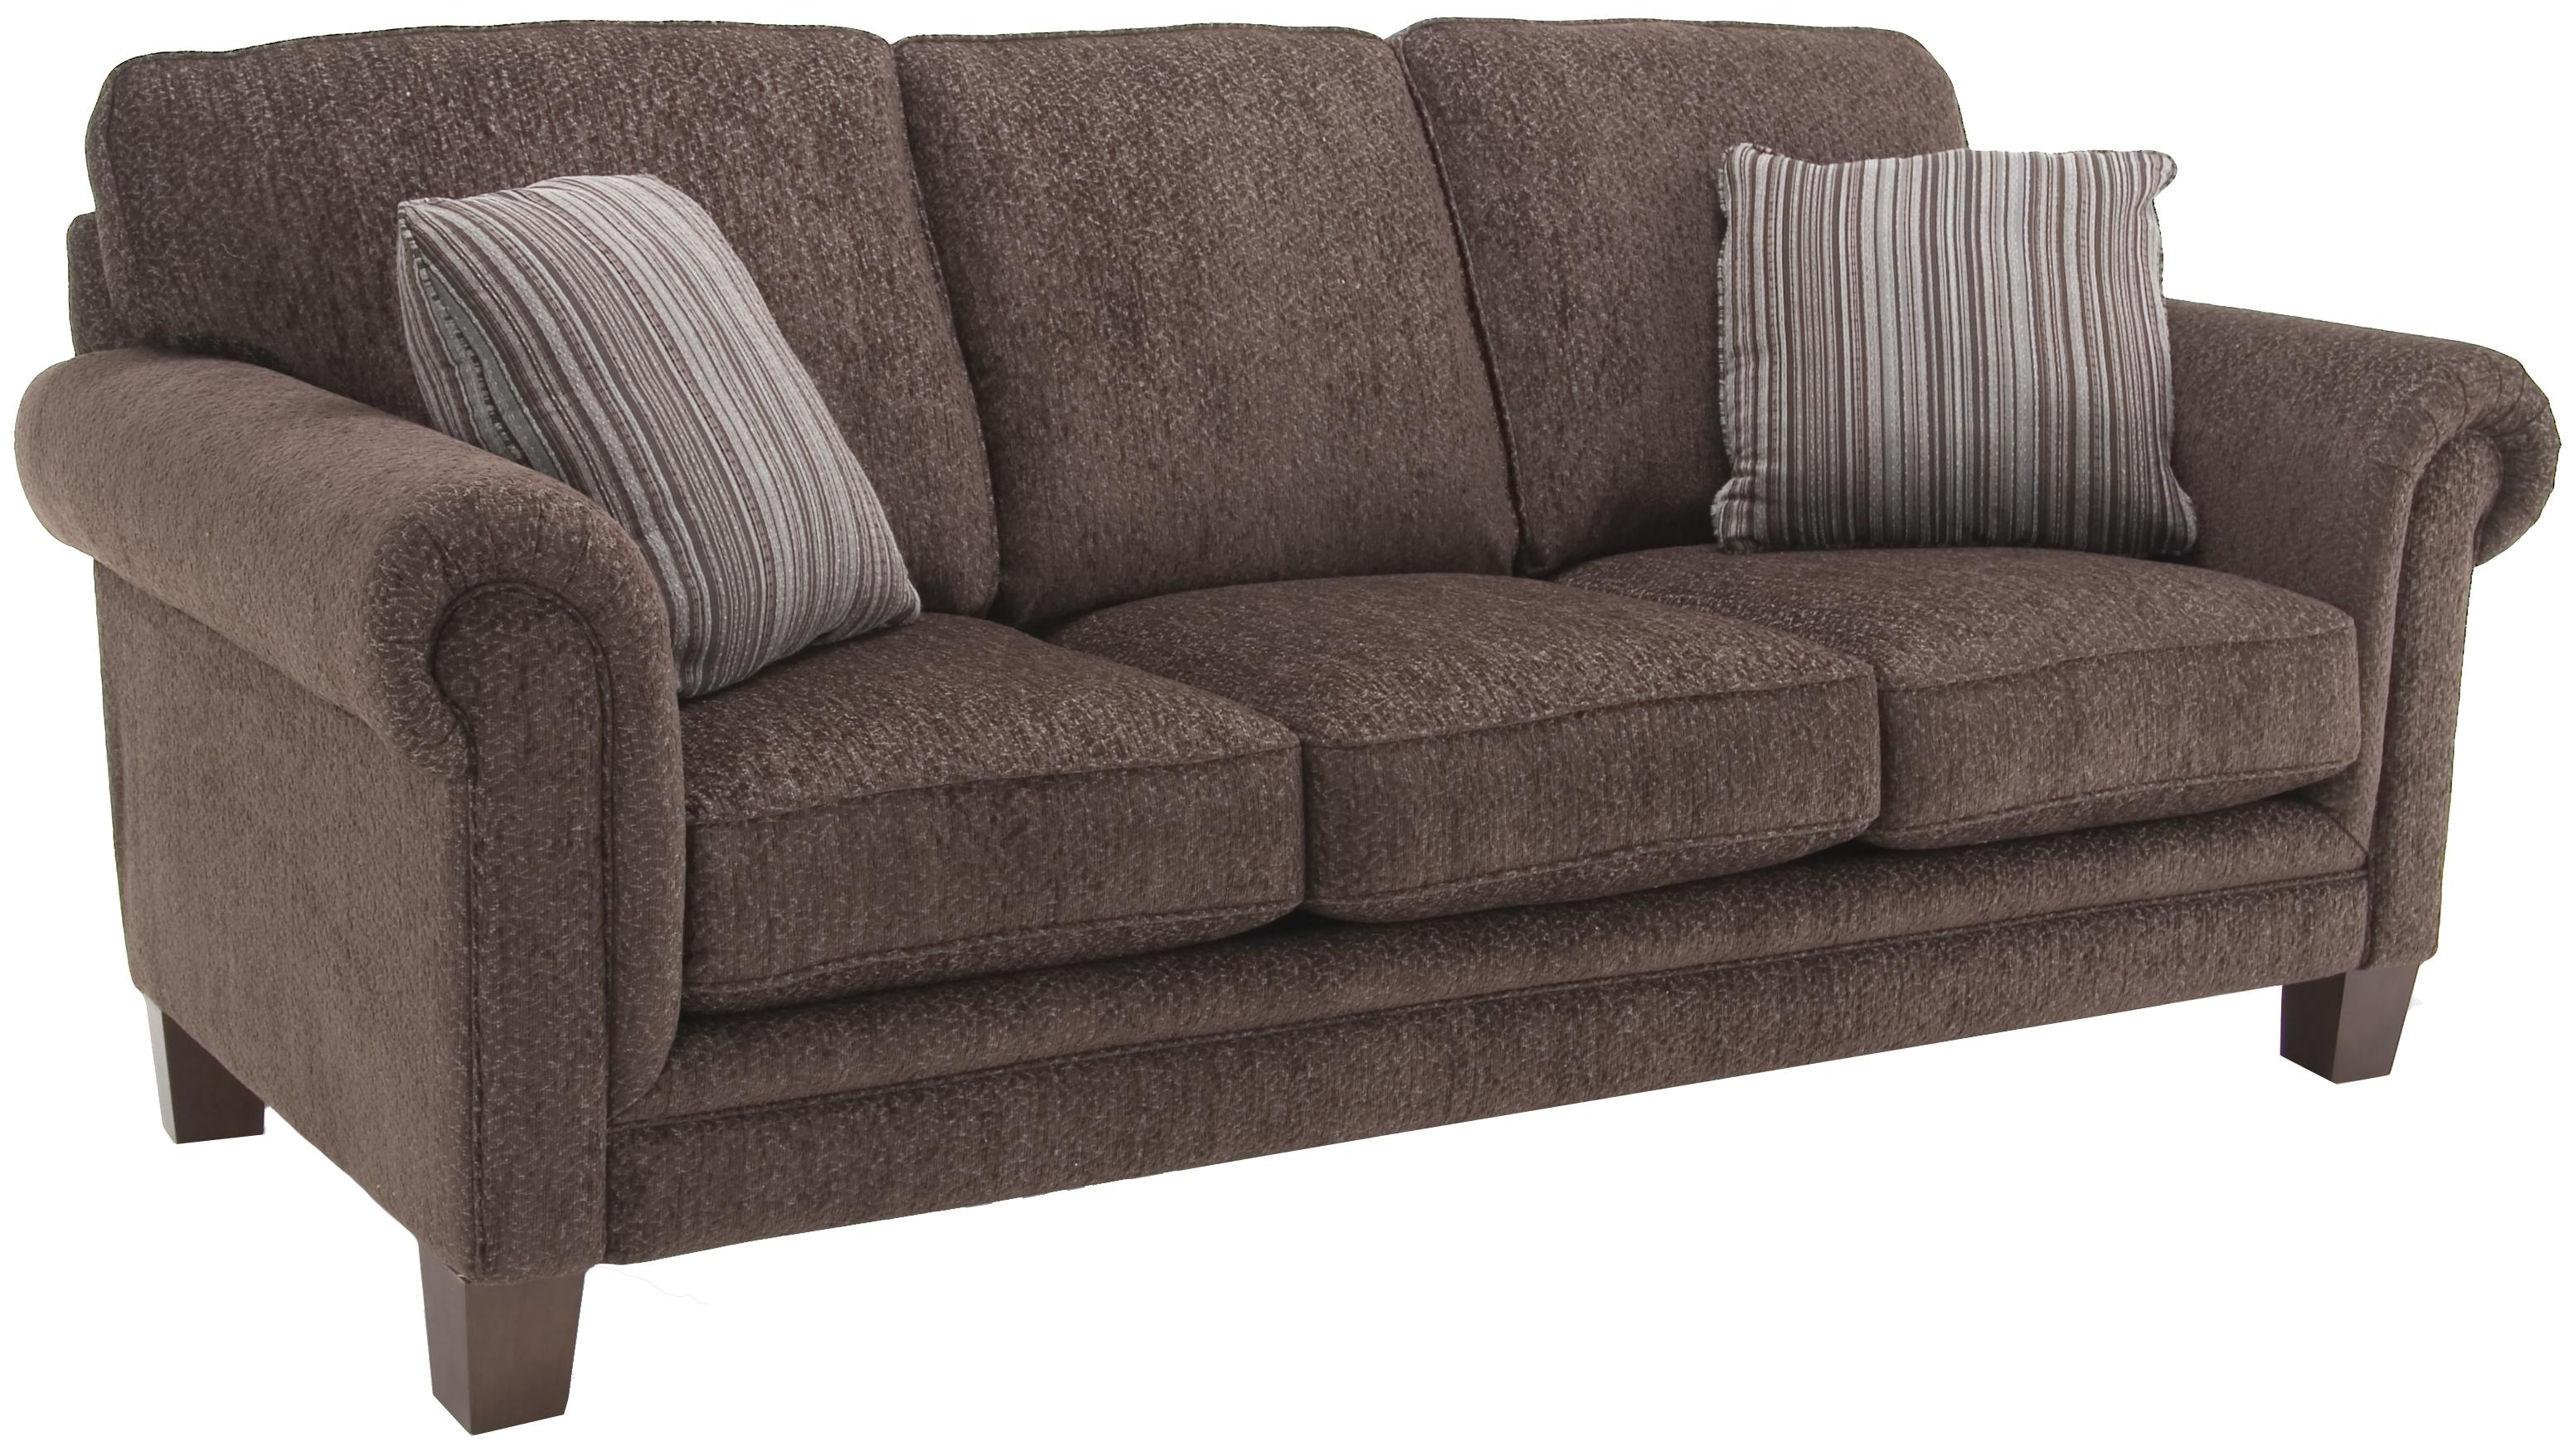 2179 Sofa by Decor-Rest at Johnny Janosik